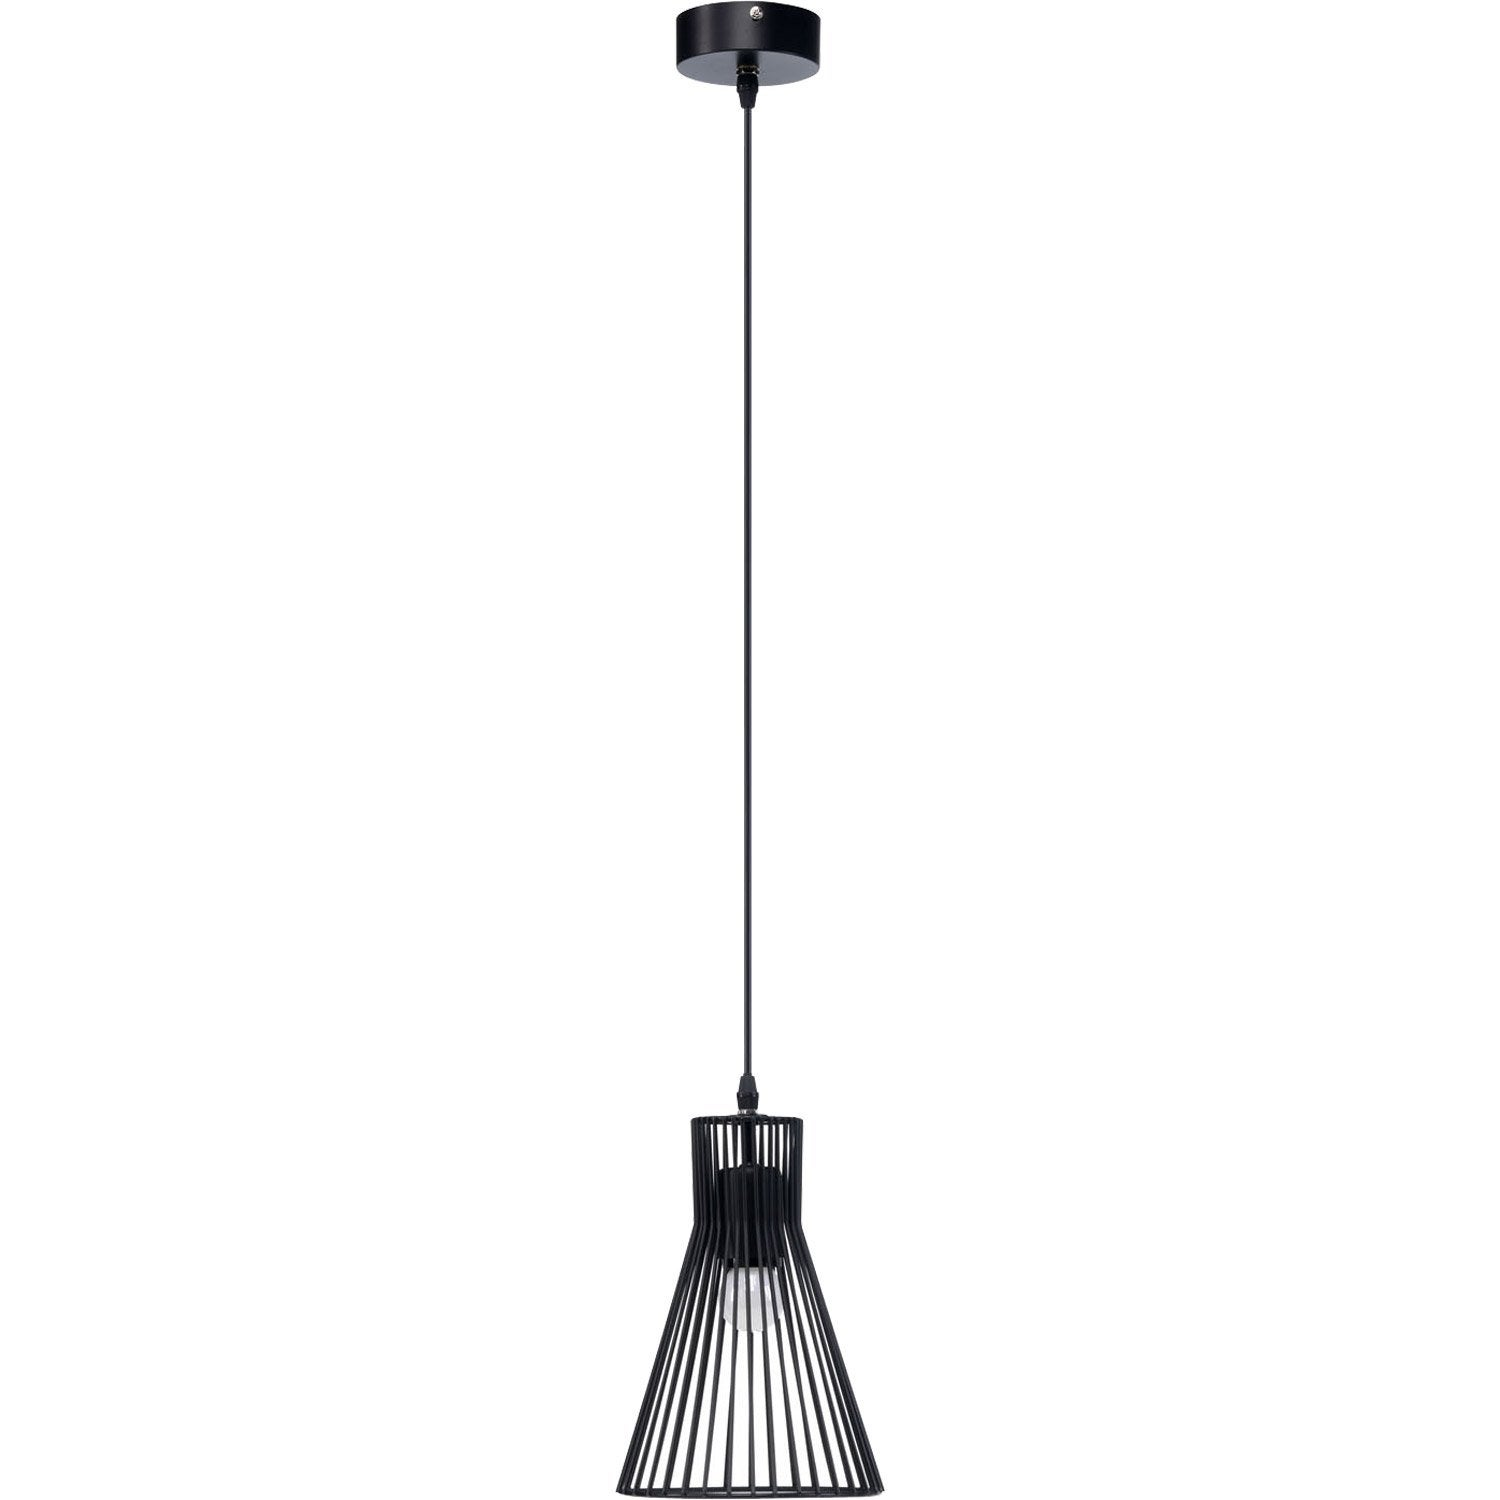 suspension e27 design gael metal noir 1 x 60 w mathias 5 Frais Suspension Noire Cuisine Hgd6